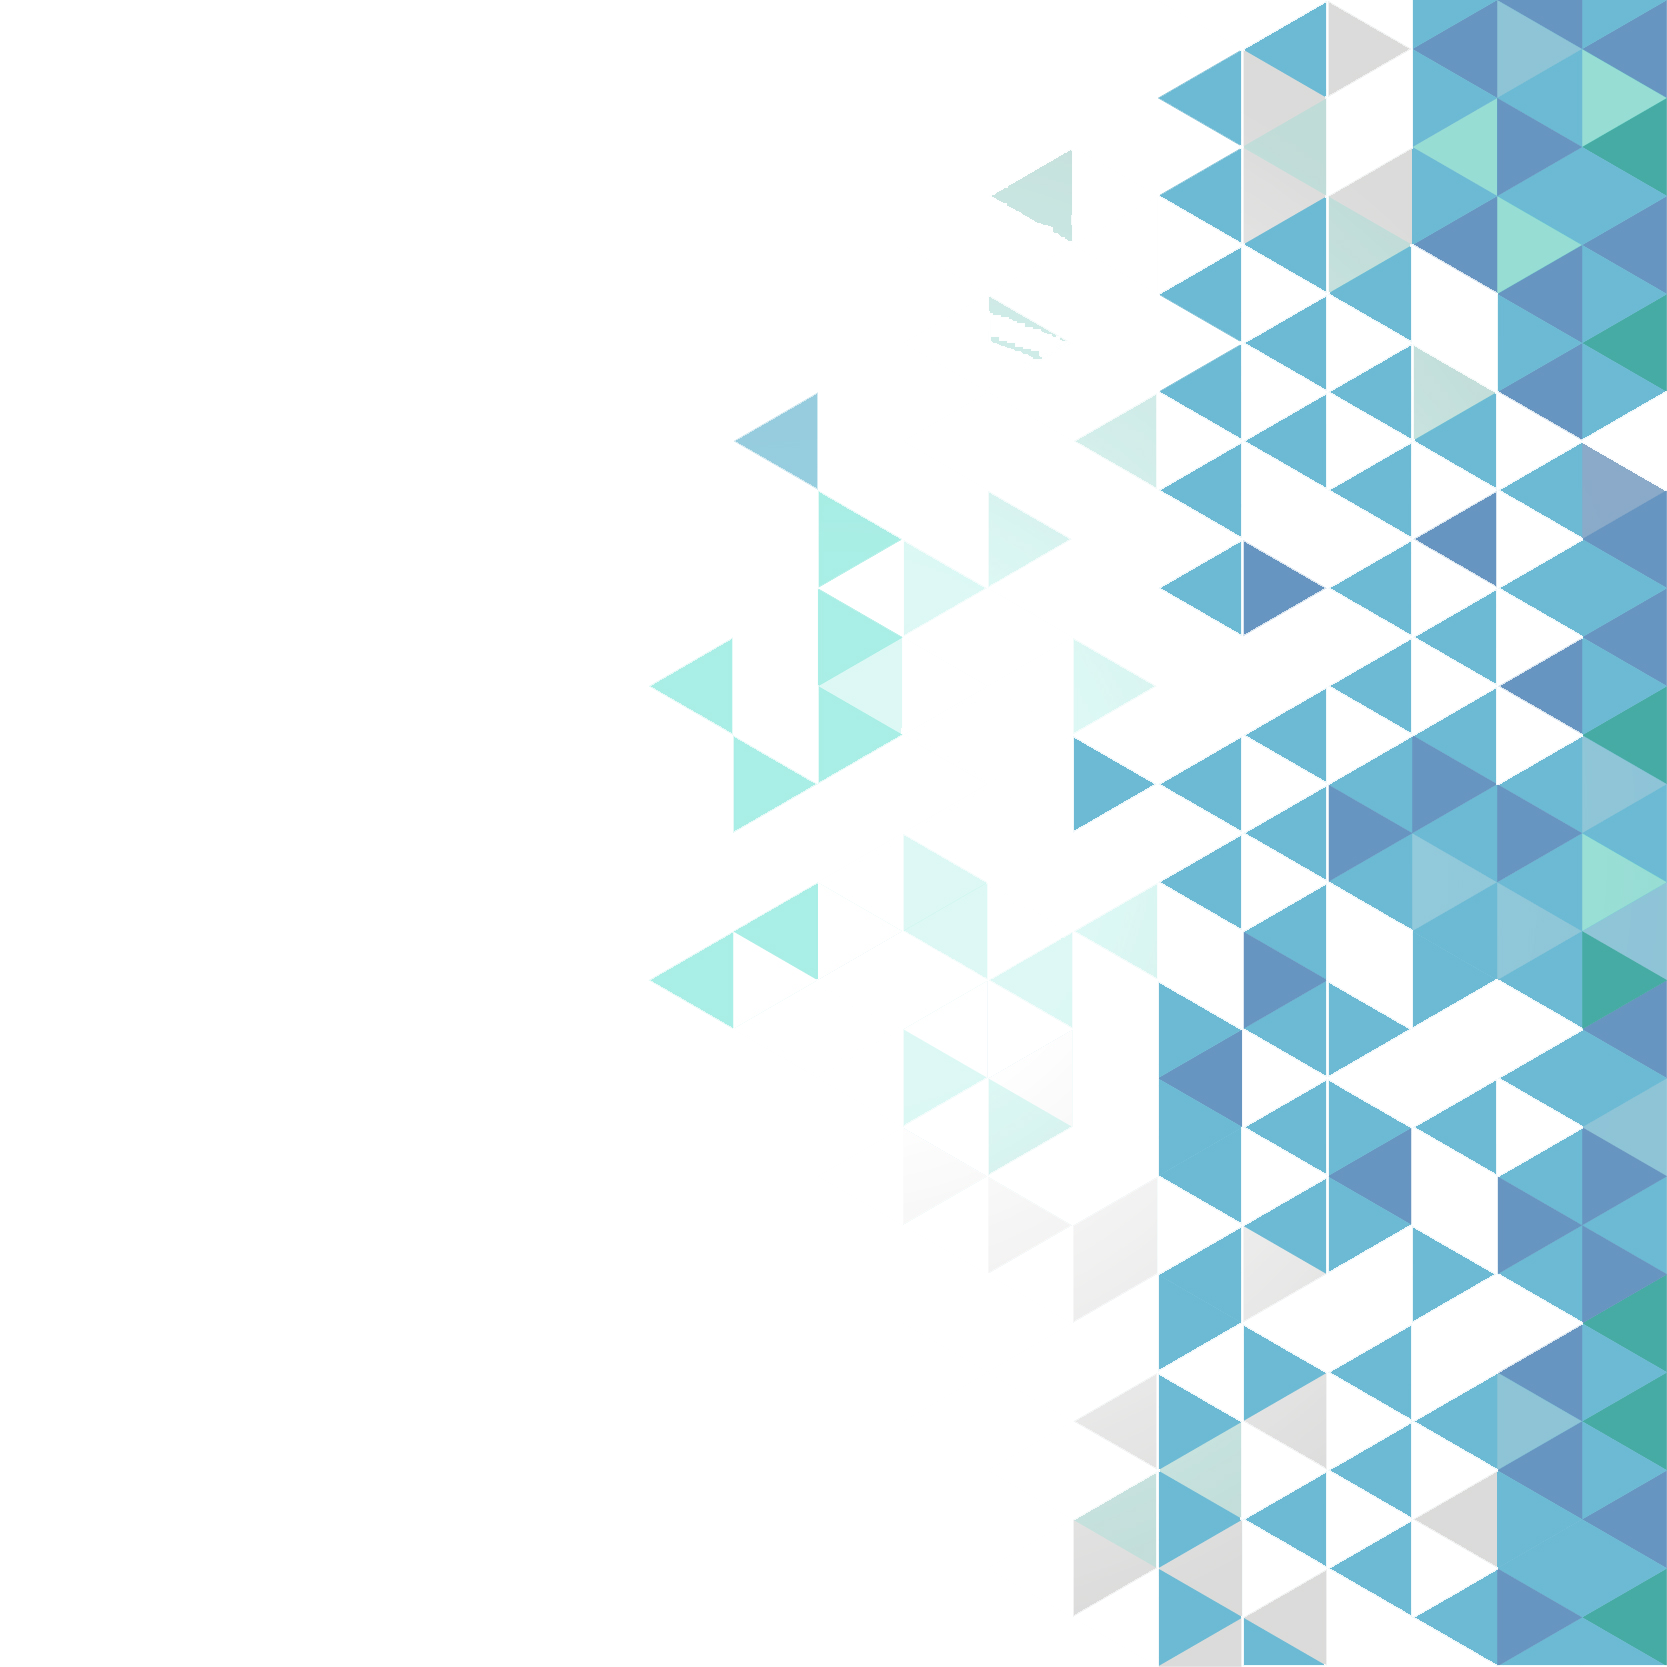 Background png images. Abstract geometric backgrounds peoplepng